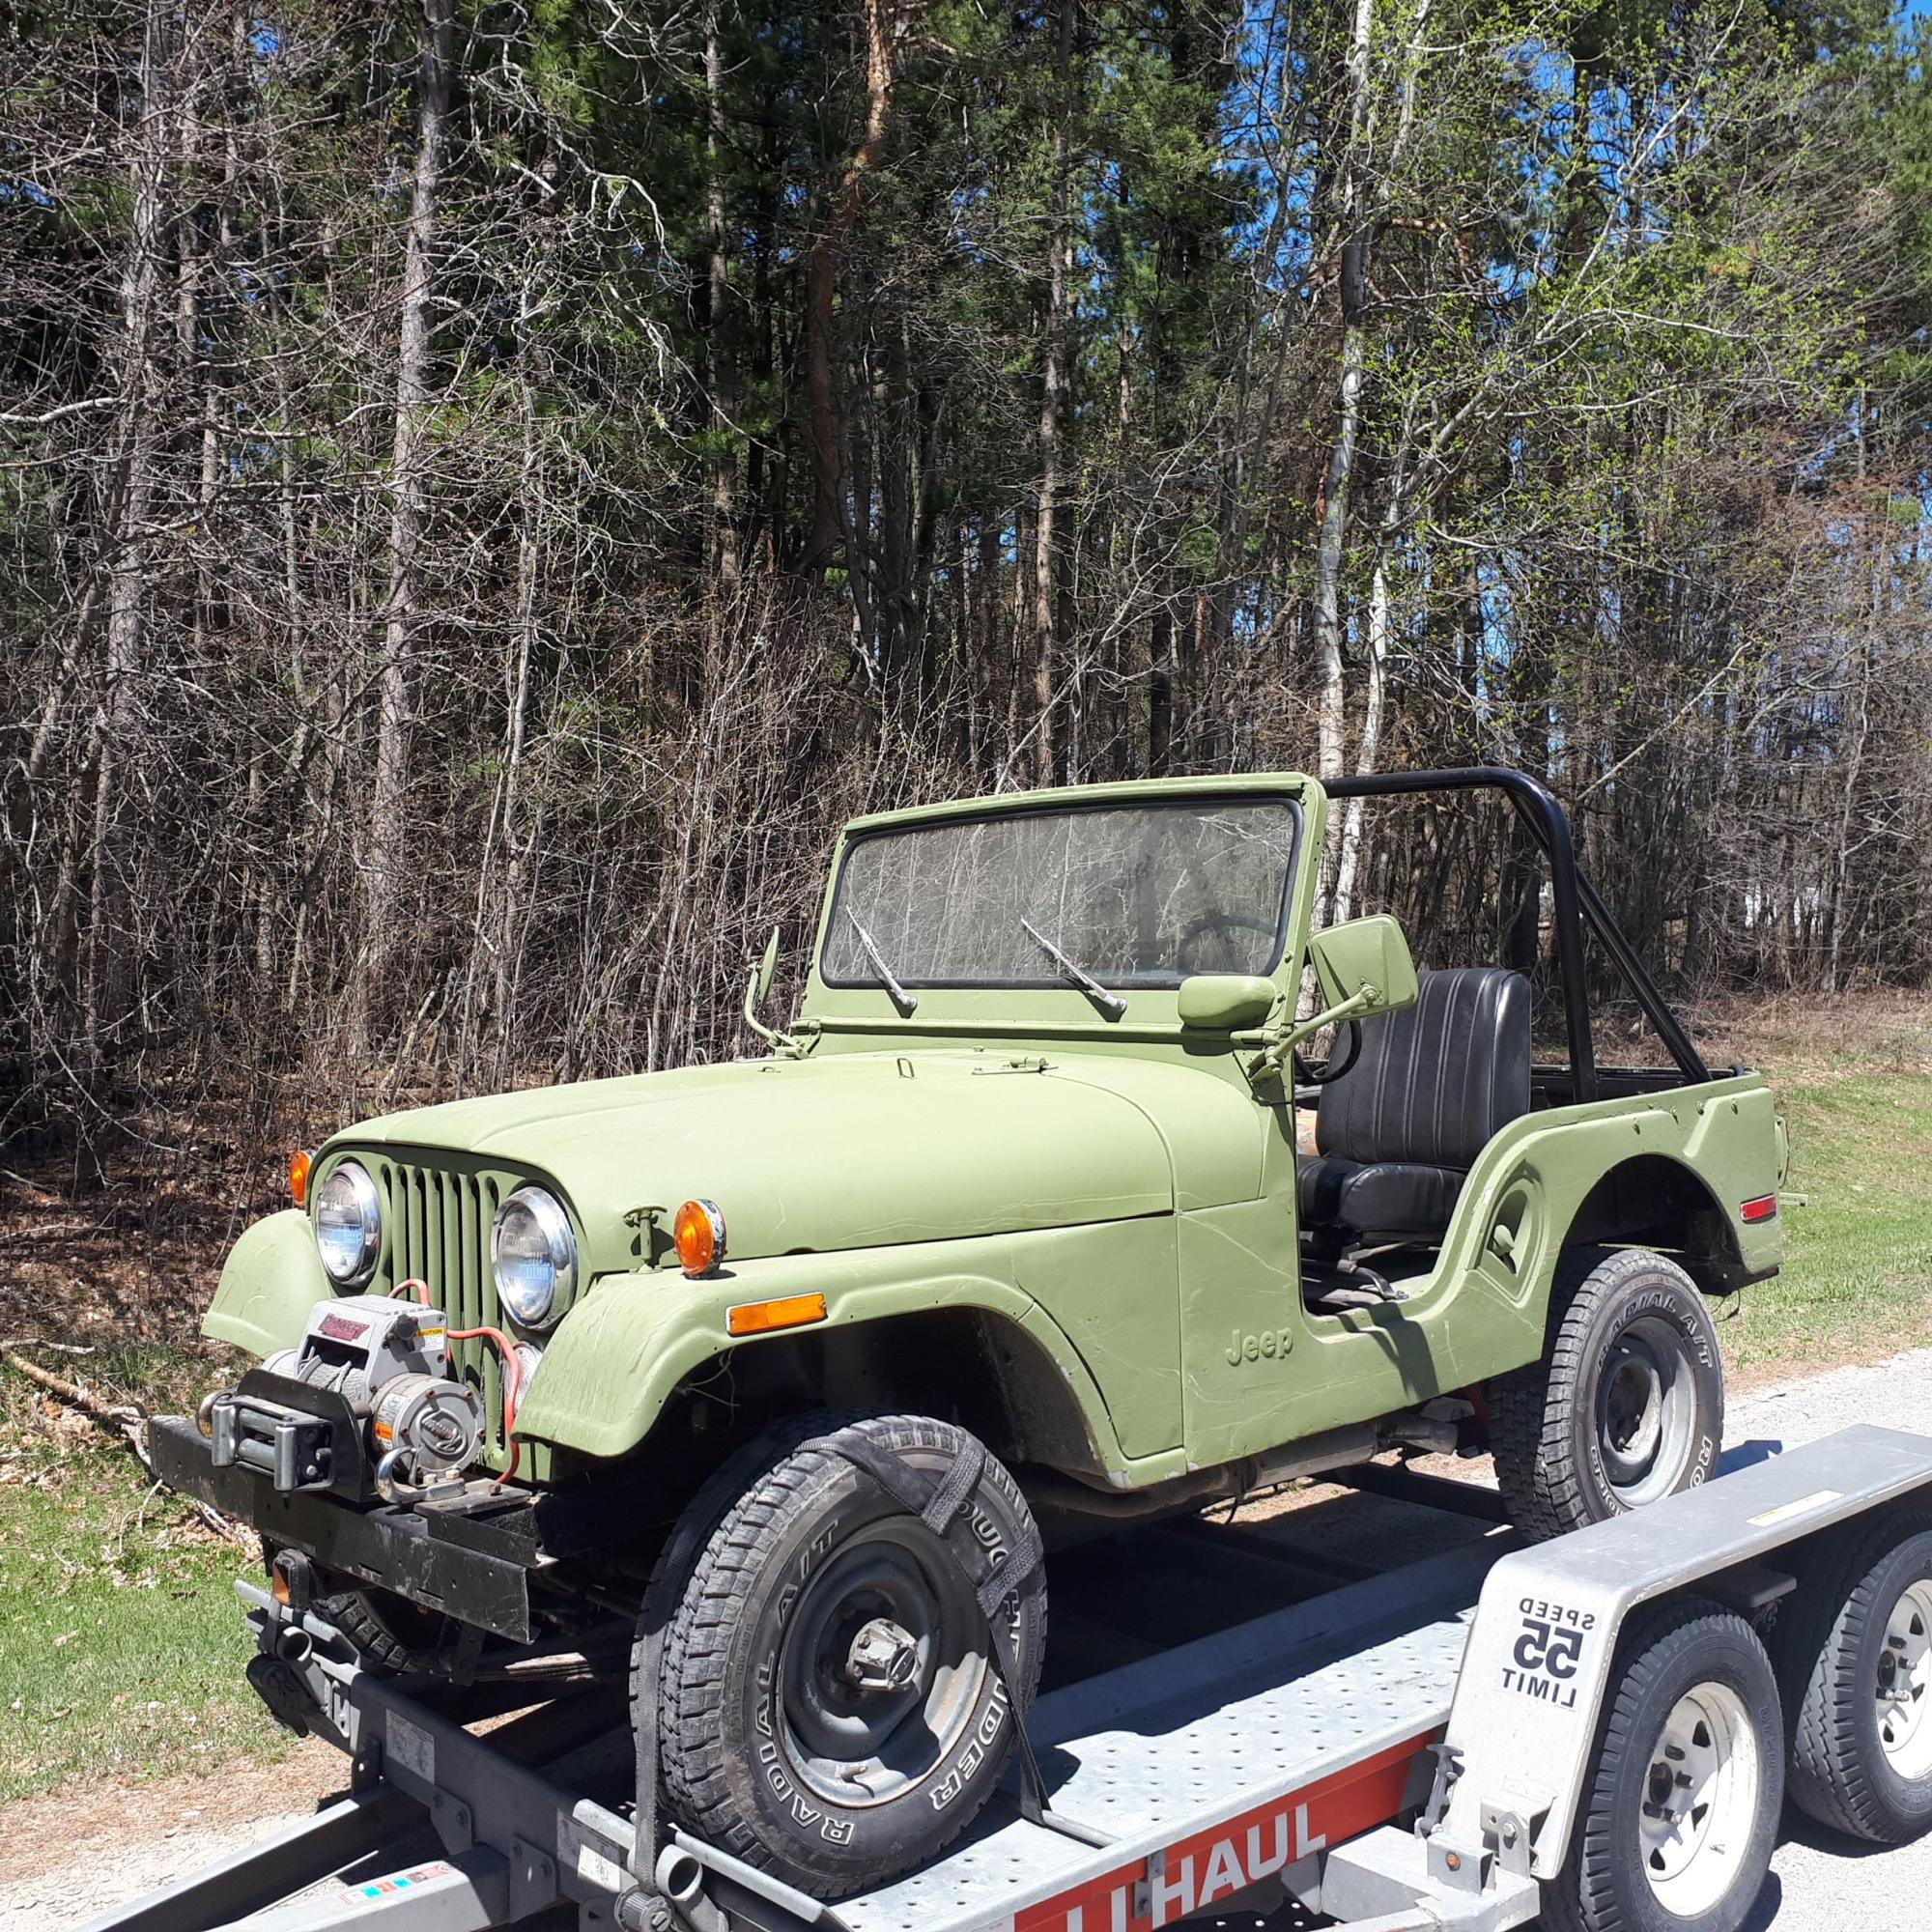 hight resolution of new toy 75 cj5 where can i get a tare down manual and parts